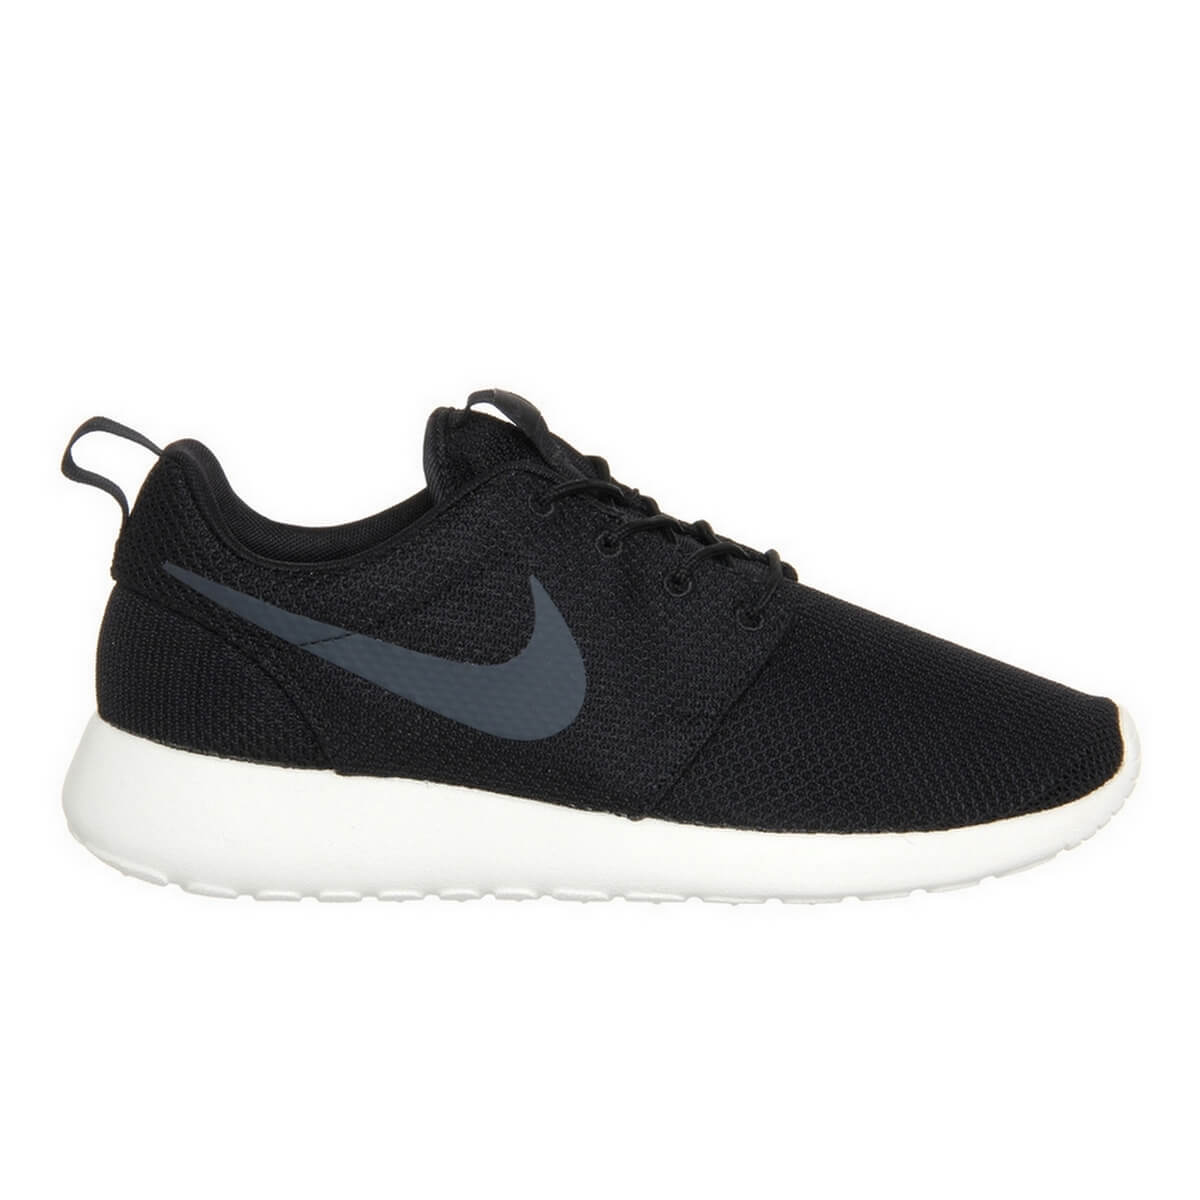 Nike Roshe Run Black White 511881-010  1909440c3031